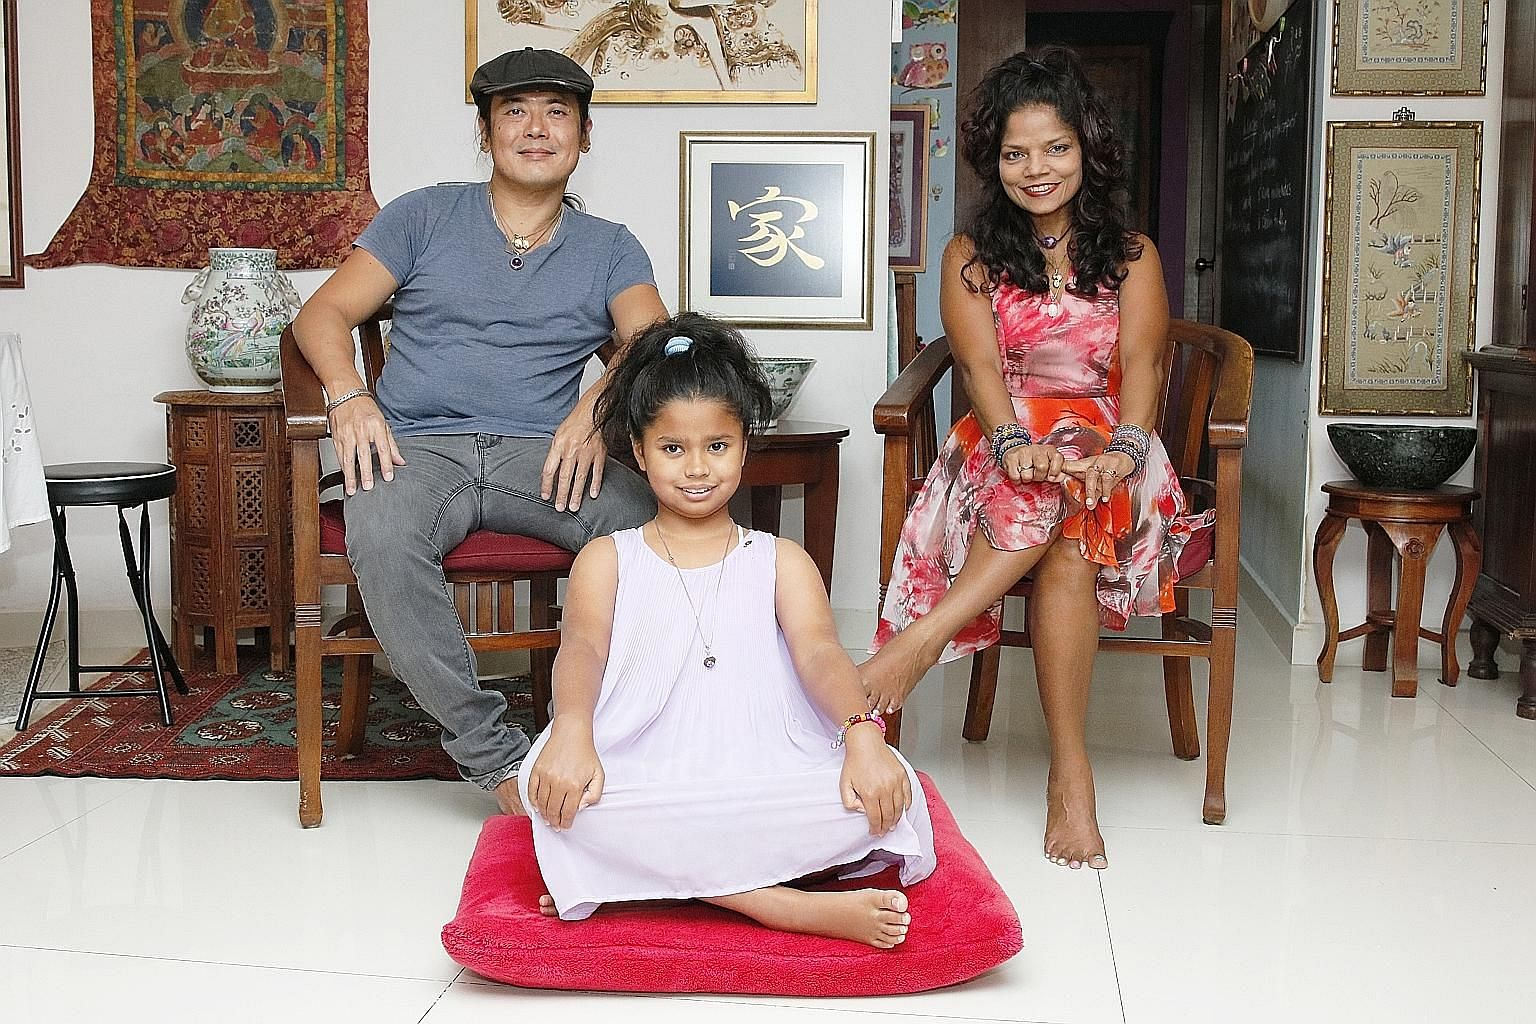 Home chef Chris Choo, his TV producer wife Rose Sivam and their daughter Aleia invite people who may not get to enjoy good food and professional entertainment to their Serangoon North flat every other month. From left: In July, guests tried their han